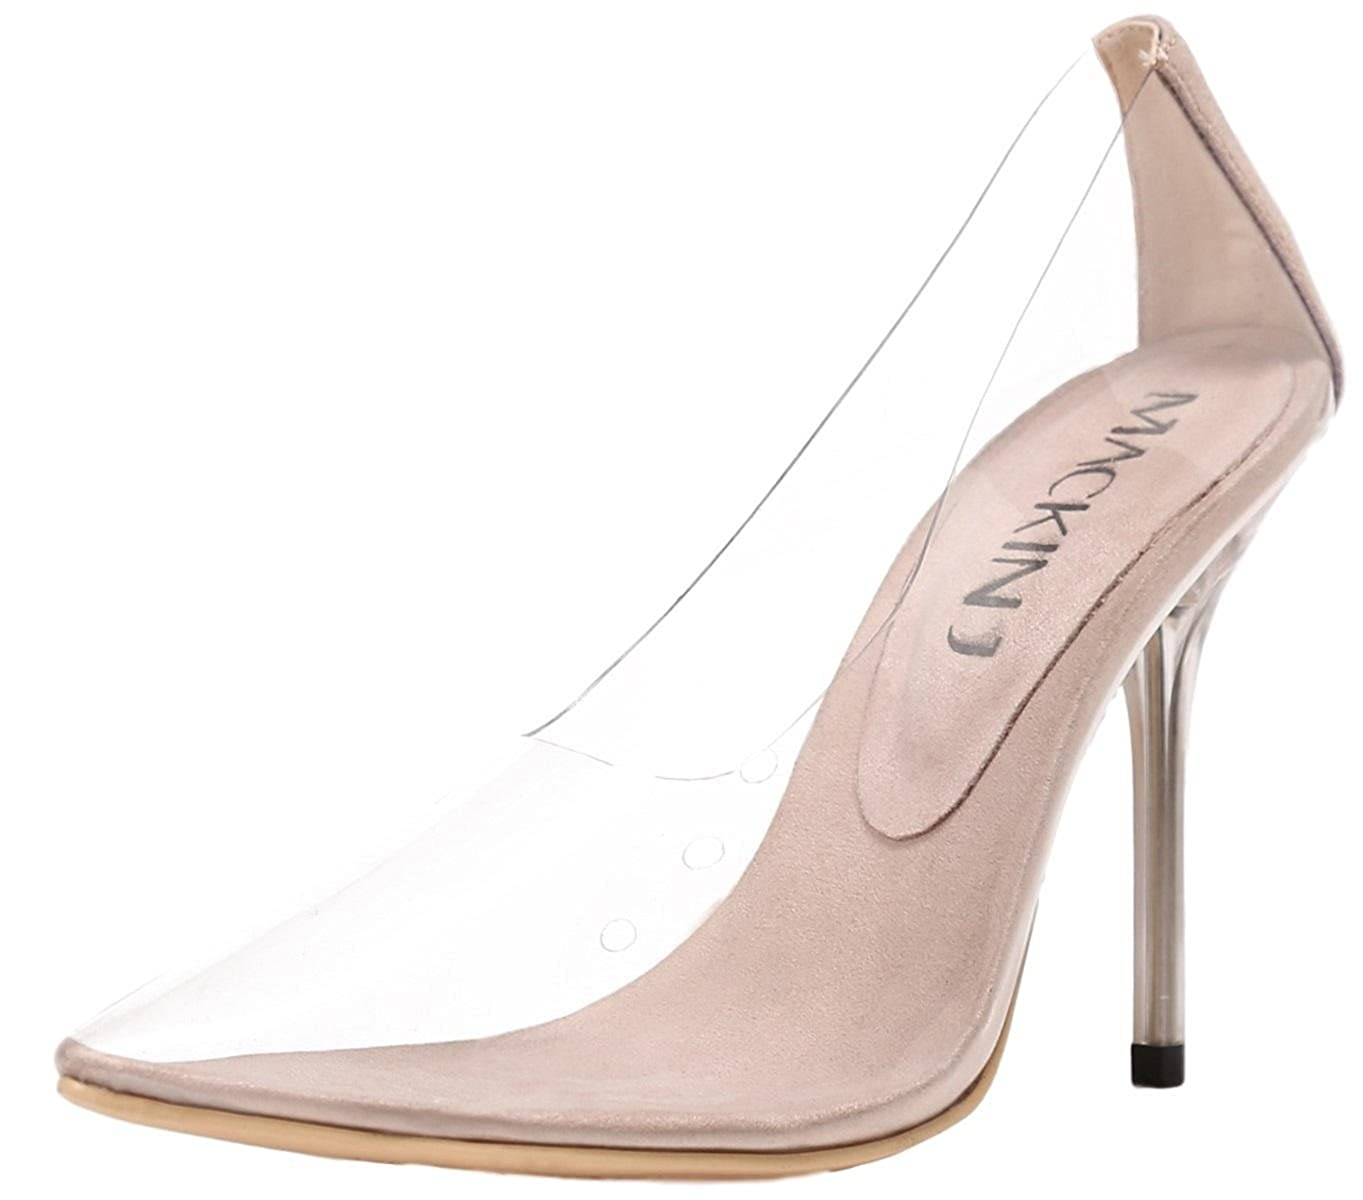 814b3871a05 Mackin J 260-1 Transparent Clear Pointed Pointy Toe Slip On Stiletto High  Heel Pumps Nude